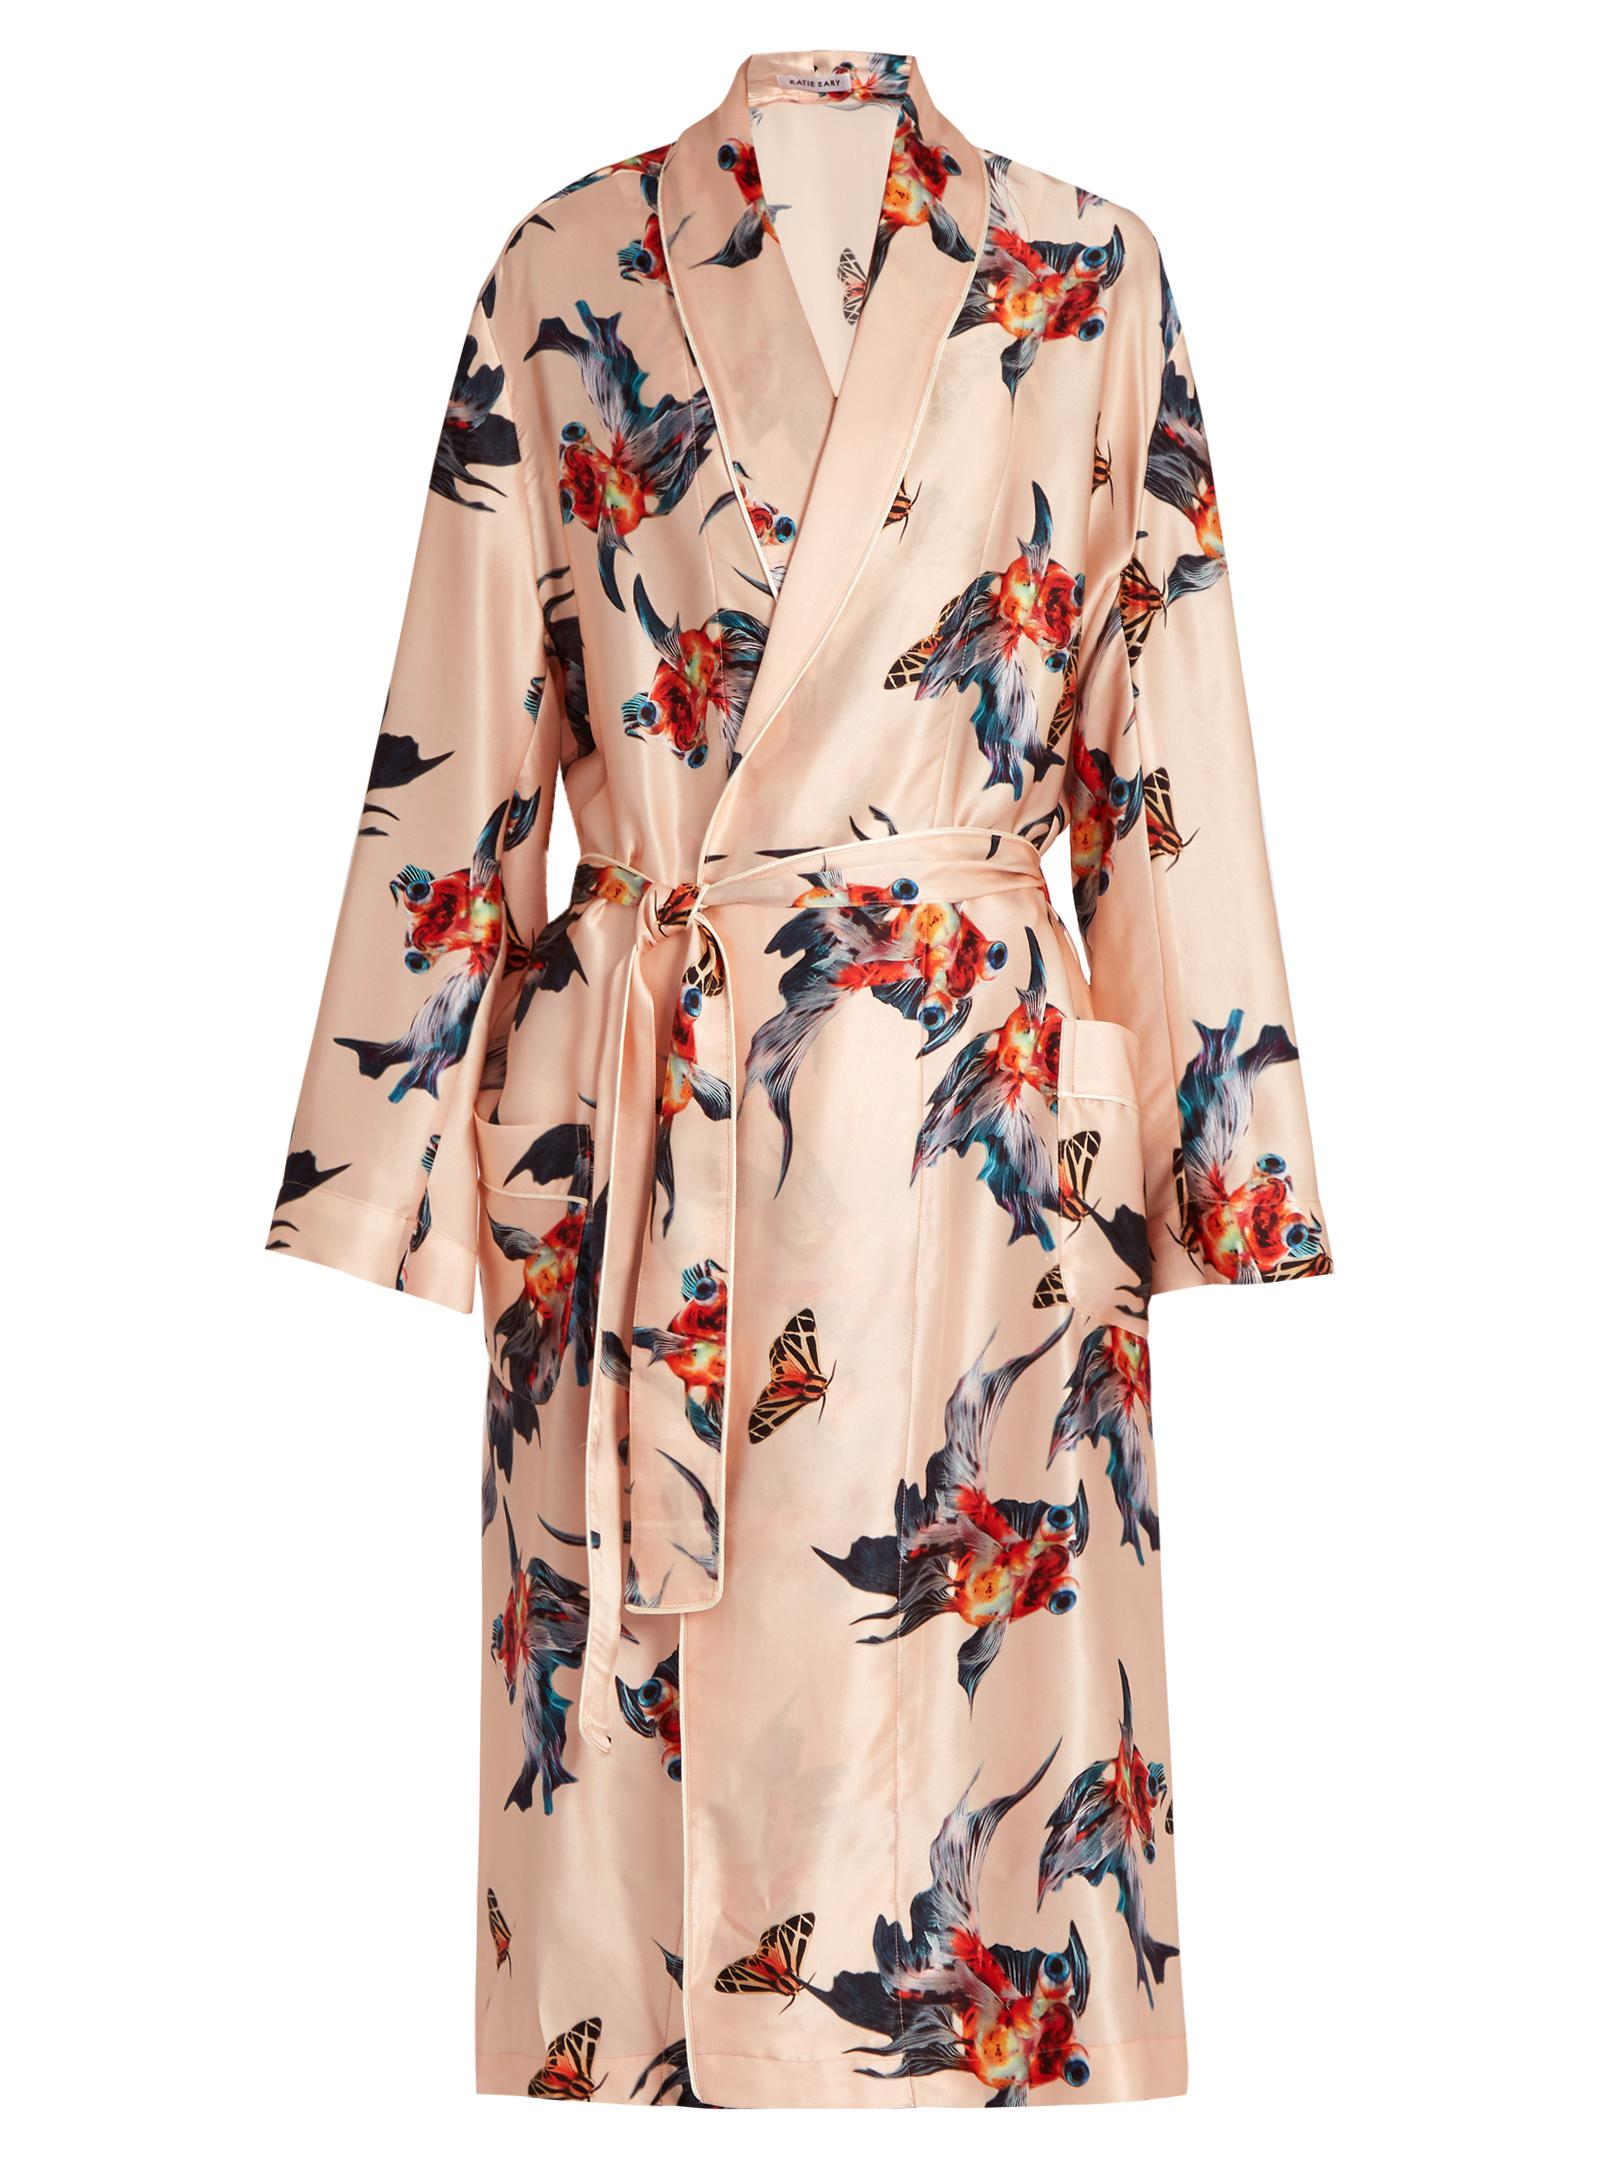 Lyst - Katie Eary Fish-print Silk-satin Dressing Gown